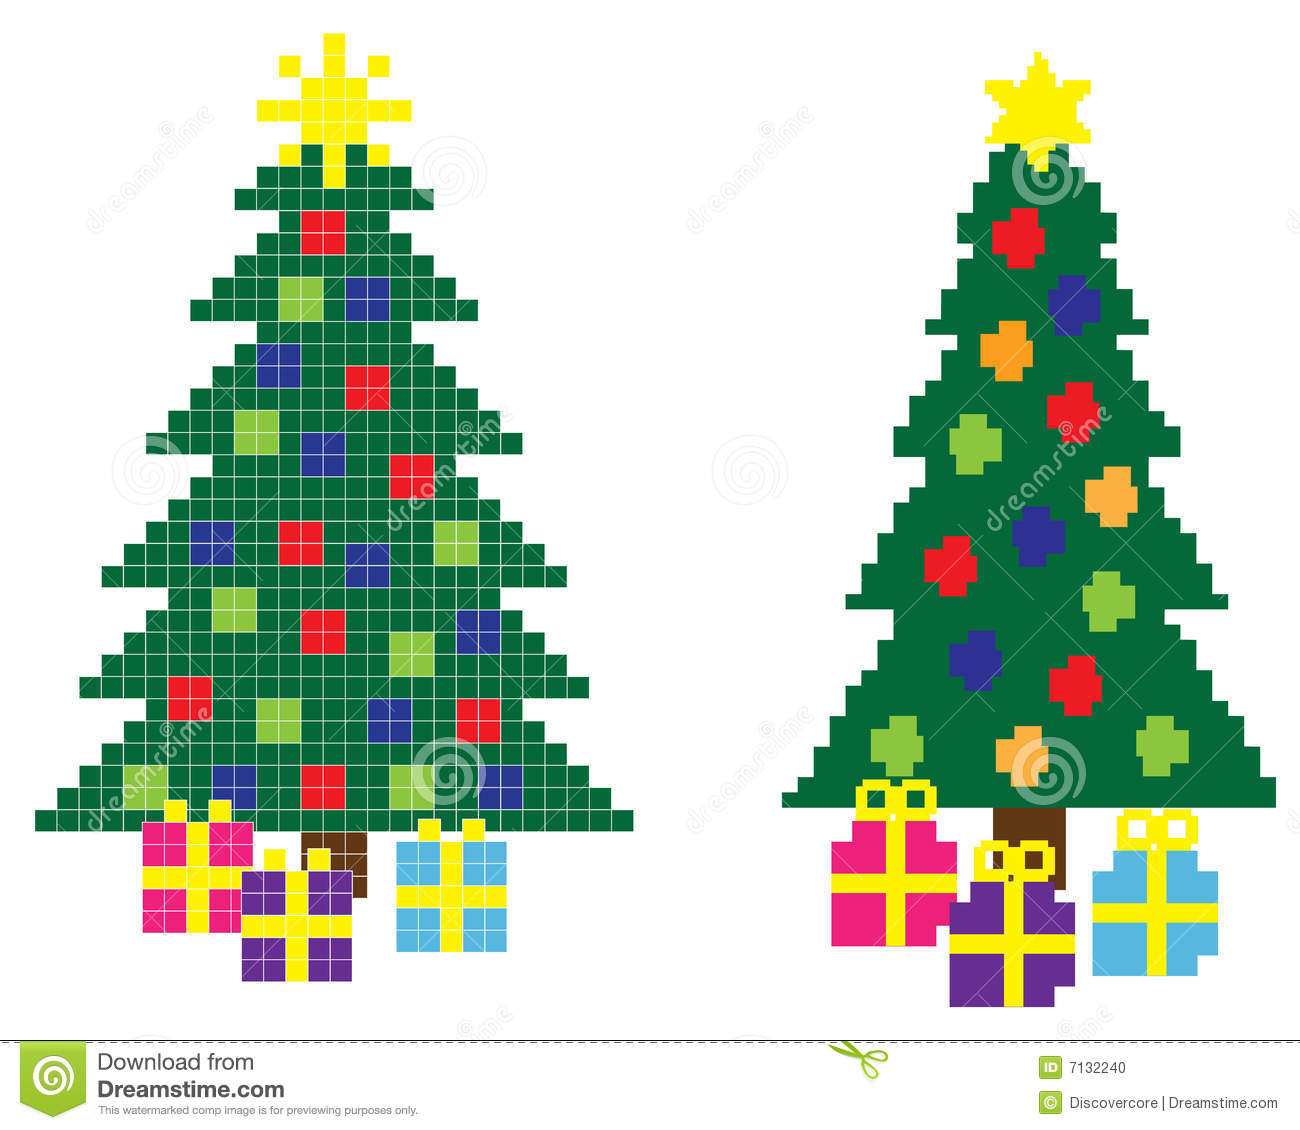 8-Bit Christmas Stock Photo - Image: 7132240